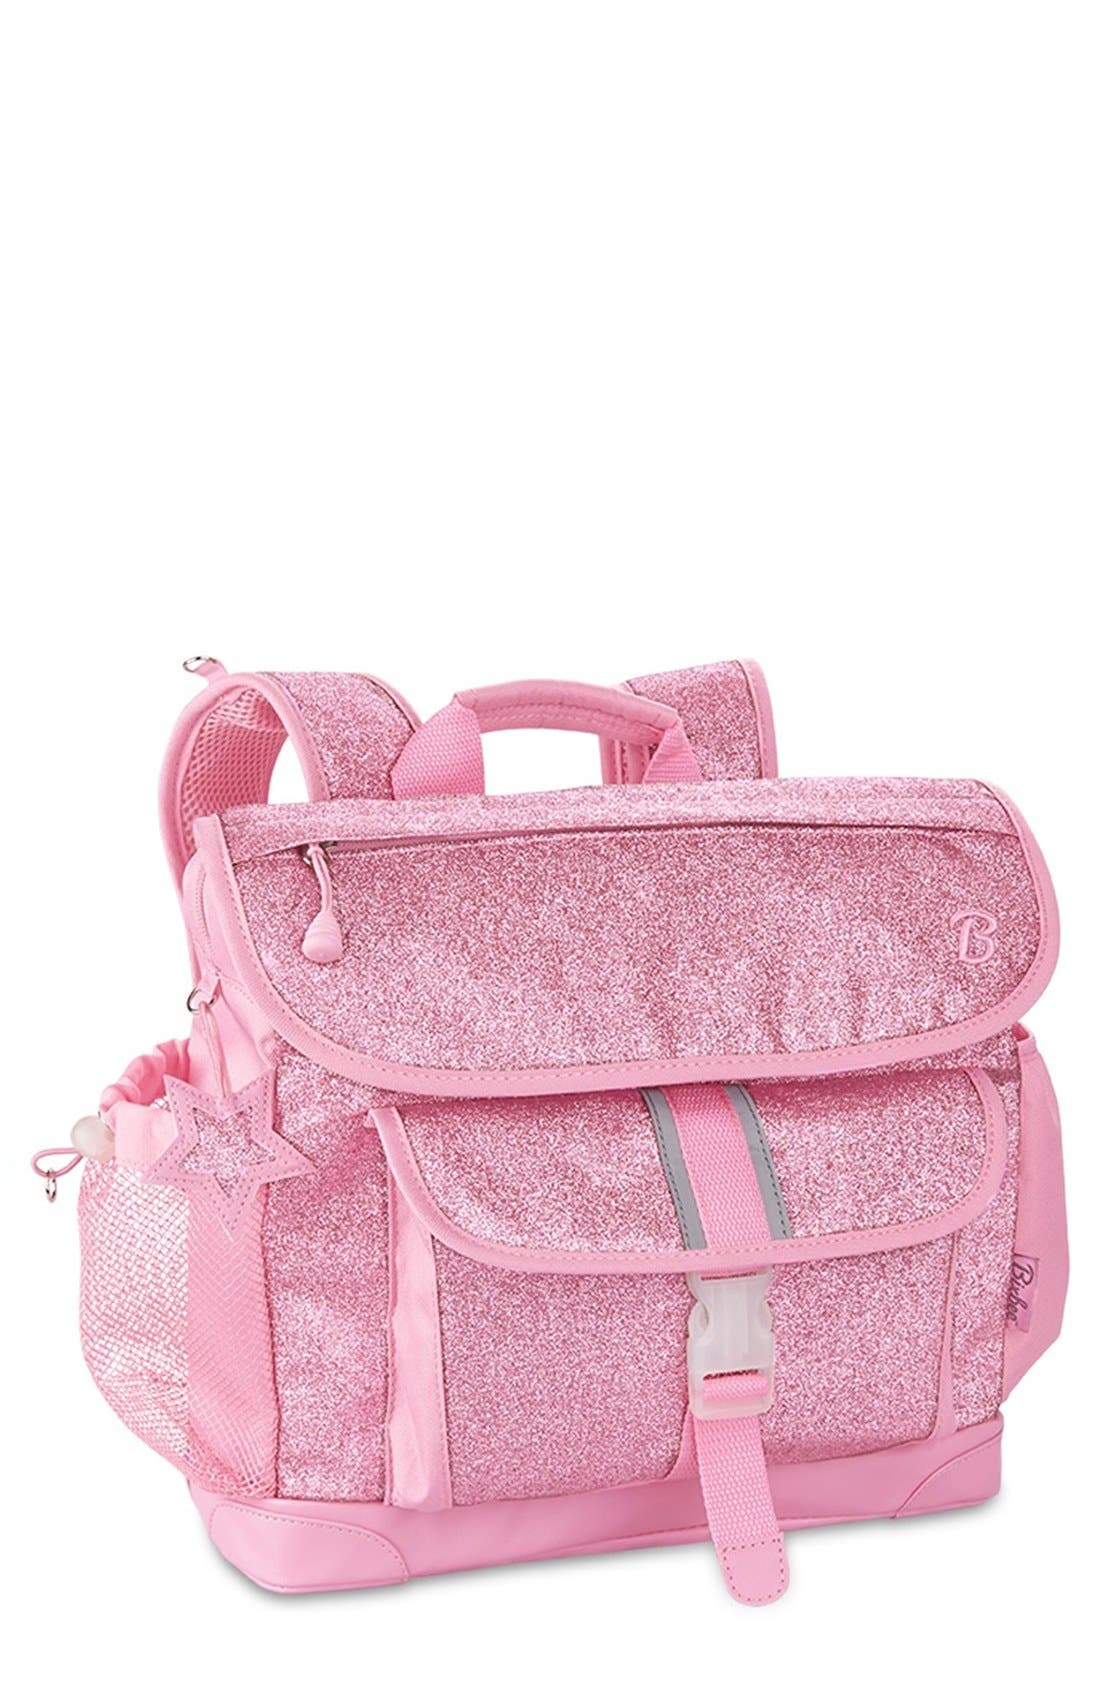 'Medium Sparkalicious' Backpack,                         Main,                         color, Pink